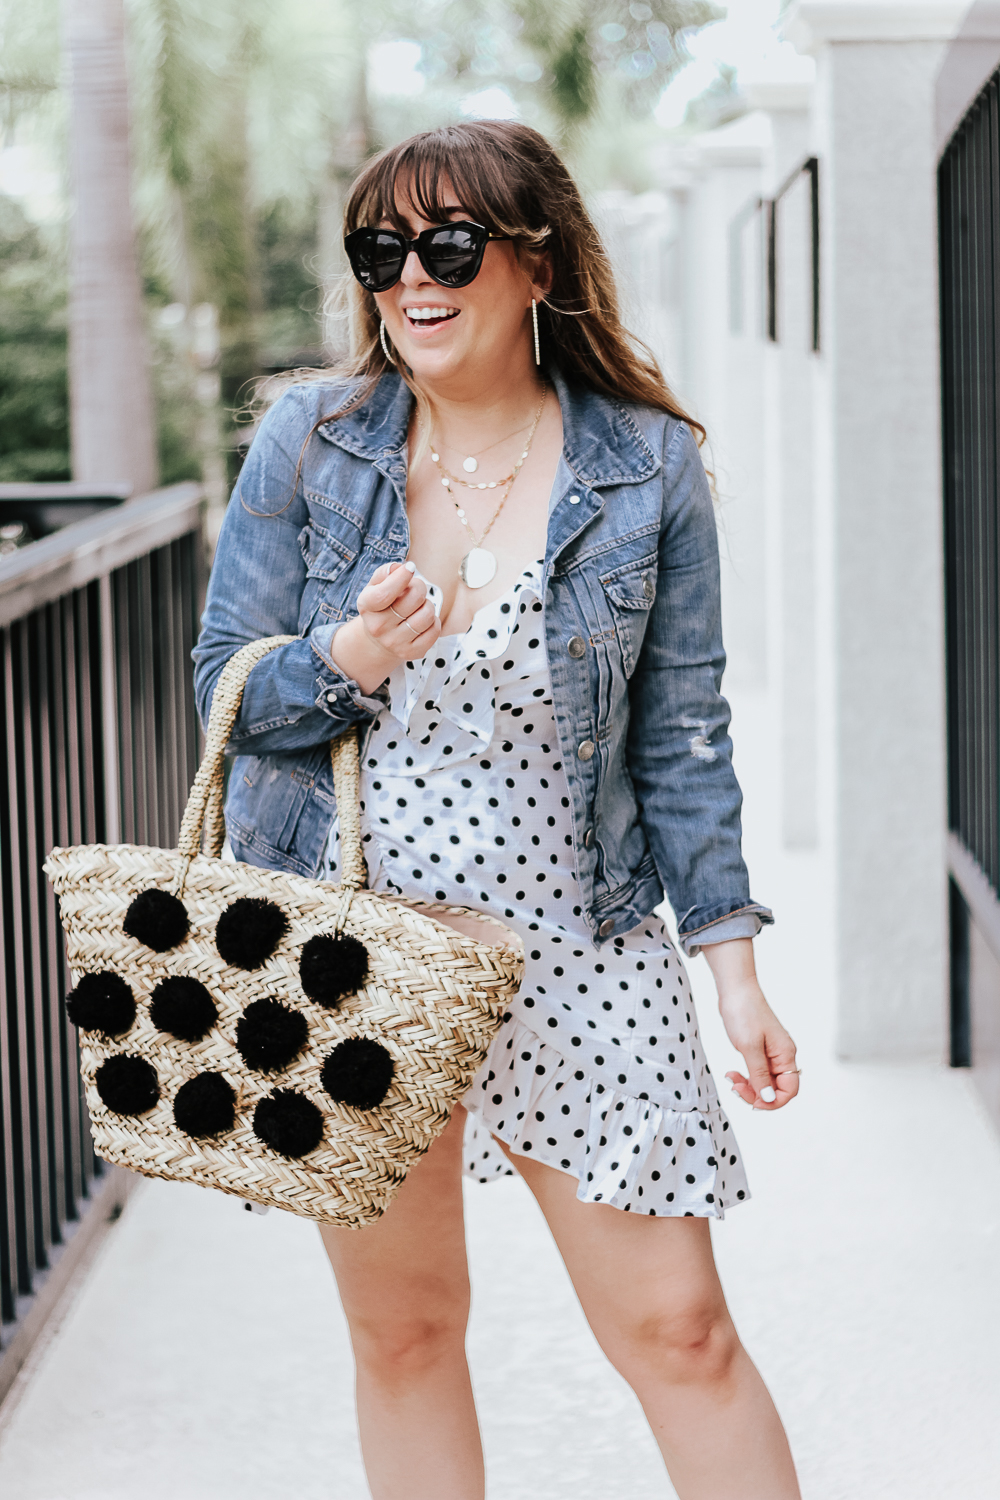 Polka dot wrap dress outfit + jean jacket